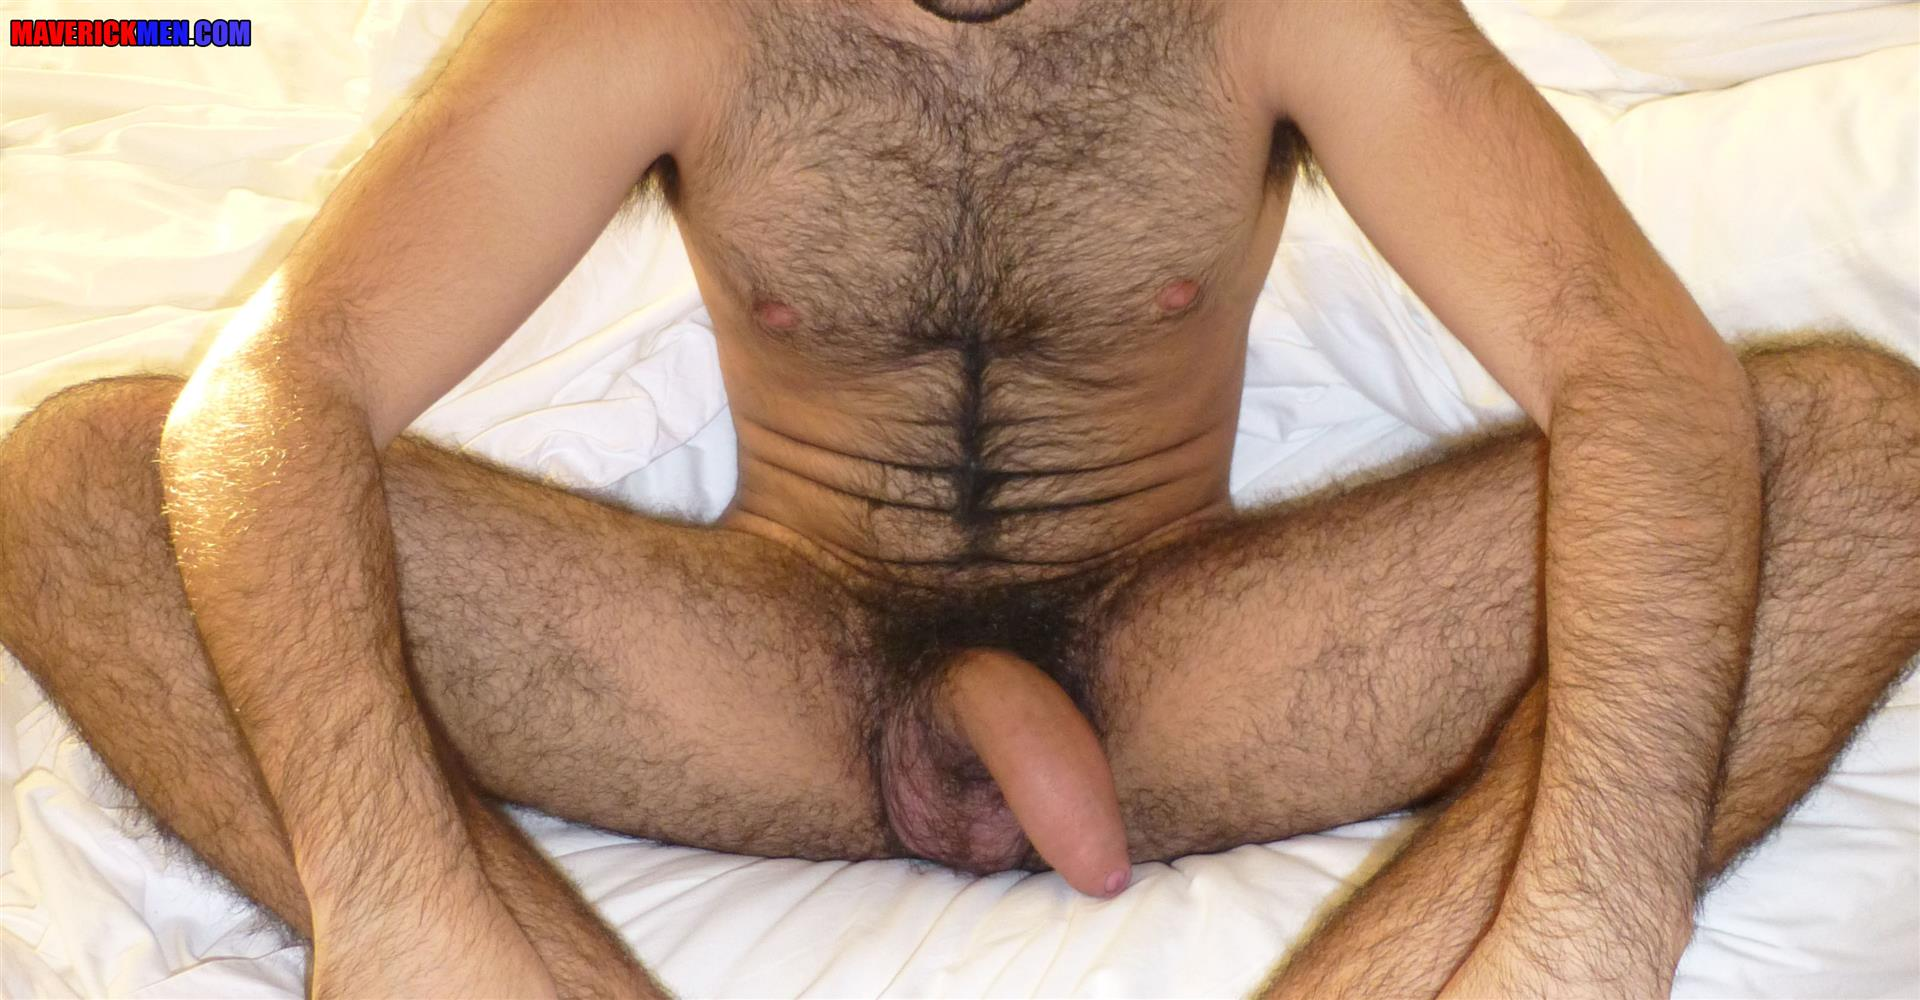 Maverick Men Little Wolf Hairy Guy With Big Uncut Cock Getting Barebacked By Two Daddies Gay Porn 09 Hairy Ass Young Guy Getting Barebacked By The Maverick Men